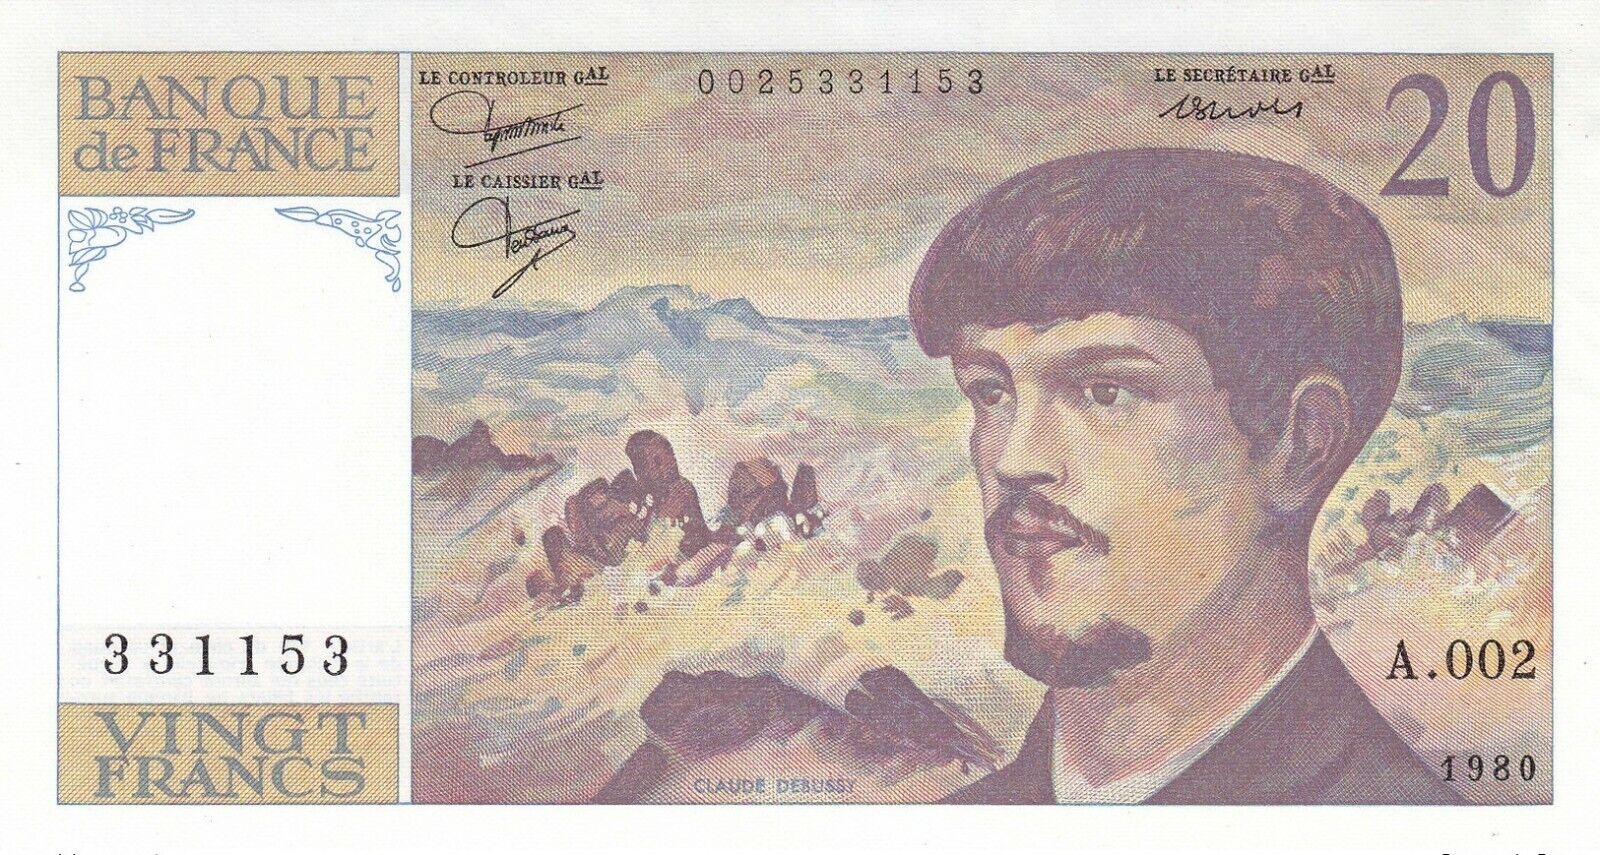 RECTO 20 francs Type 1980 Debussy - None